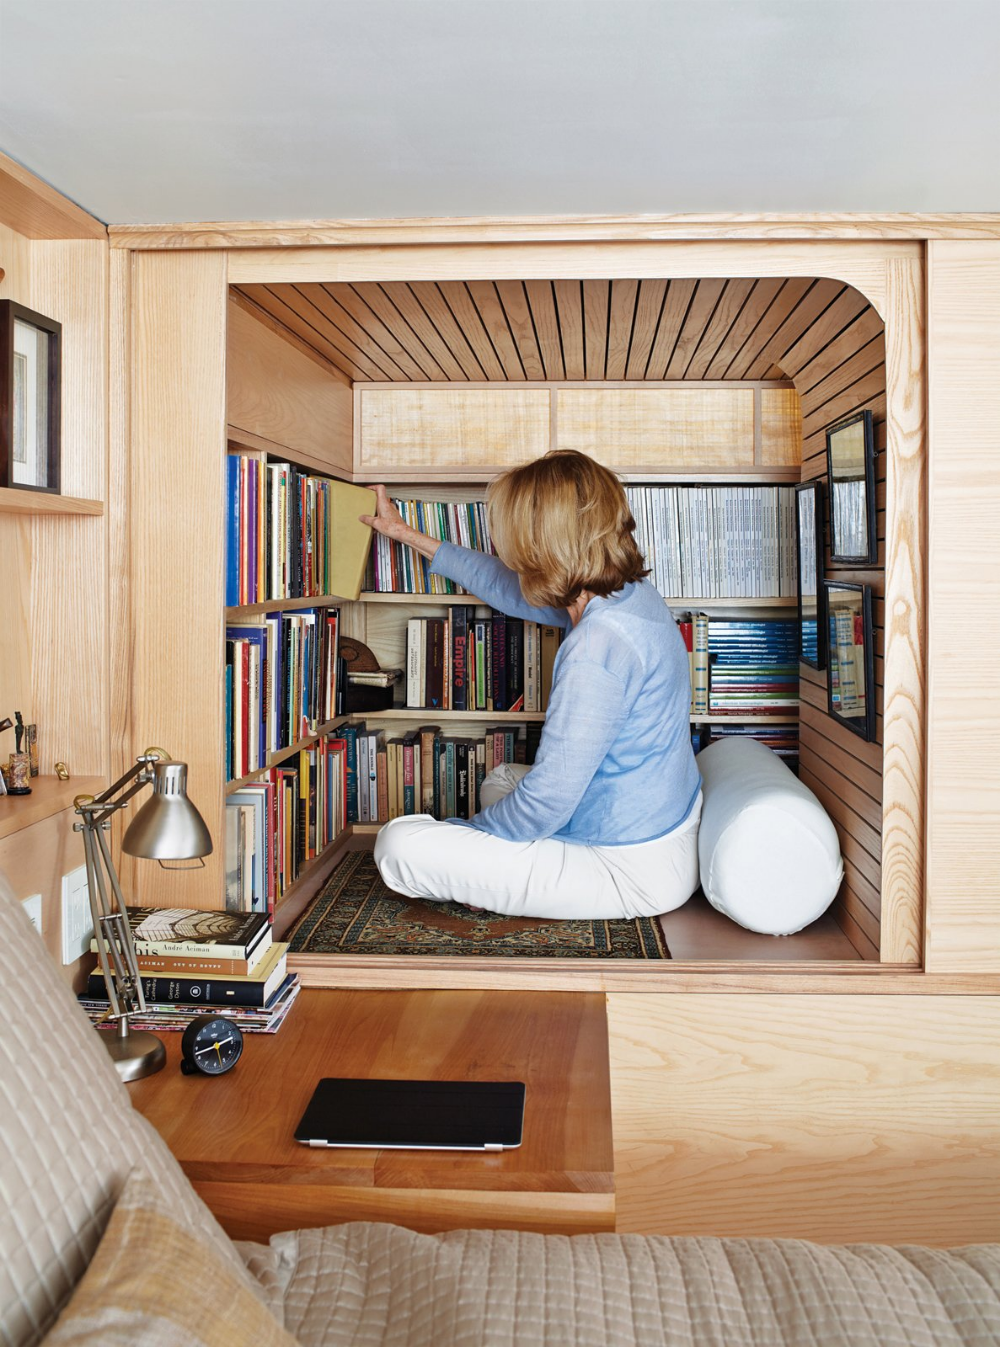 Photo 1 of 8 in Space-Saving Wood-Paneled Apartment in ...